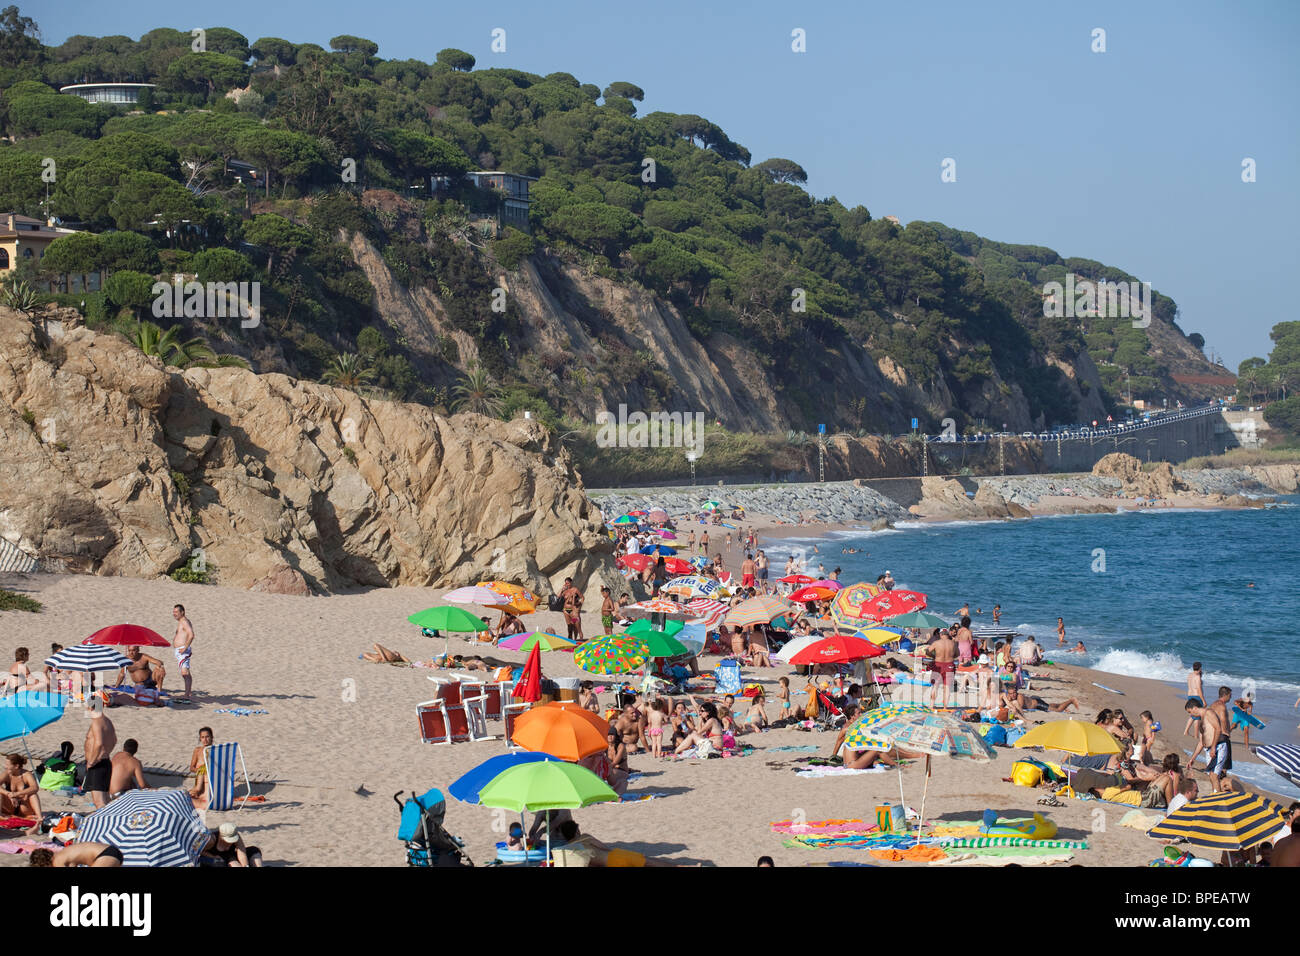 Barcelona Busy beach at Sant Pol de Mar, Spain - Stock Image